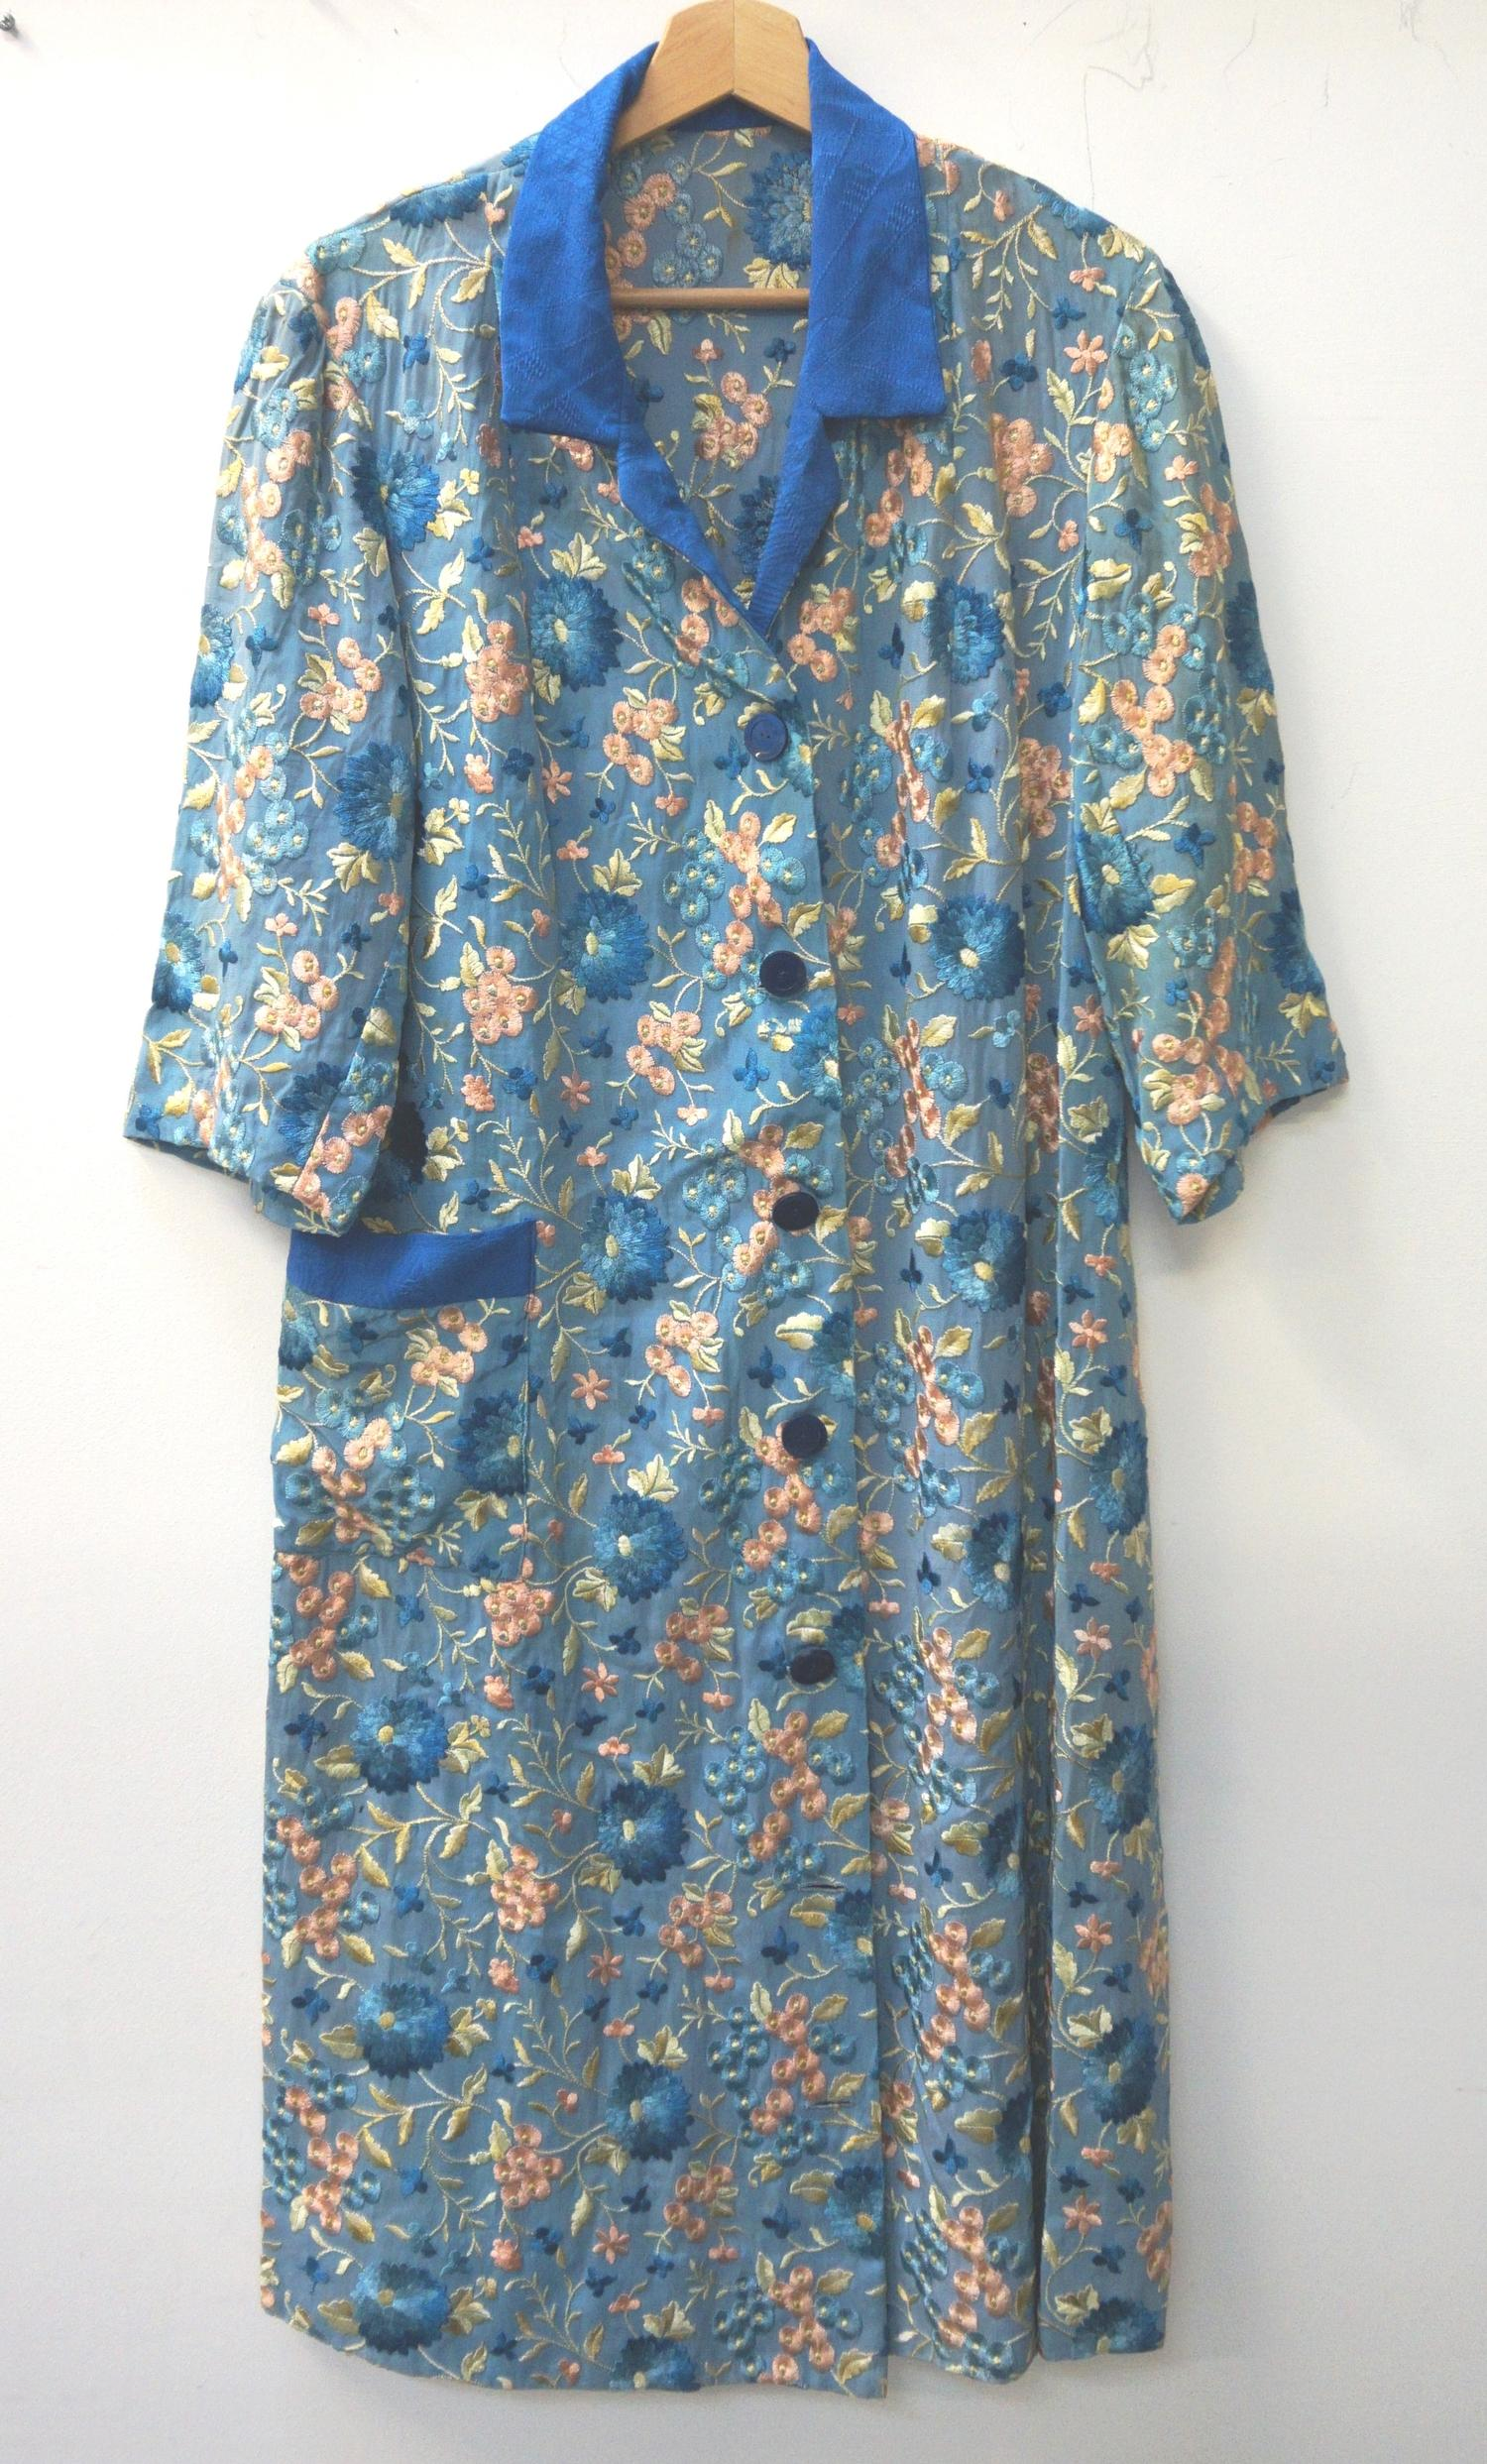 Lot 341 - CHINESE EMBROIDERED SILK AND COTTON LONG JACKET with a pale blue ground decorated with flowers and a